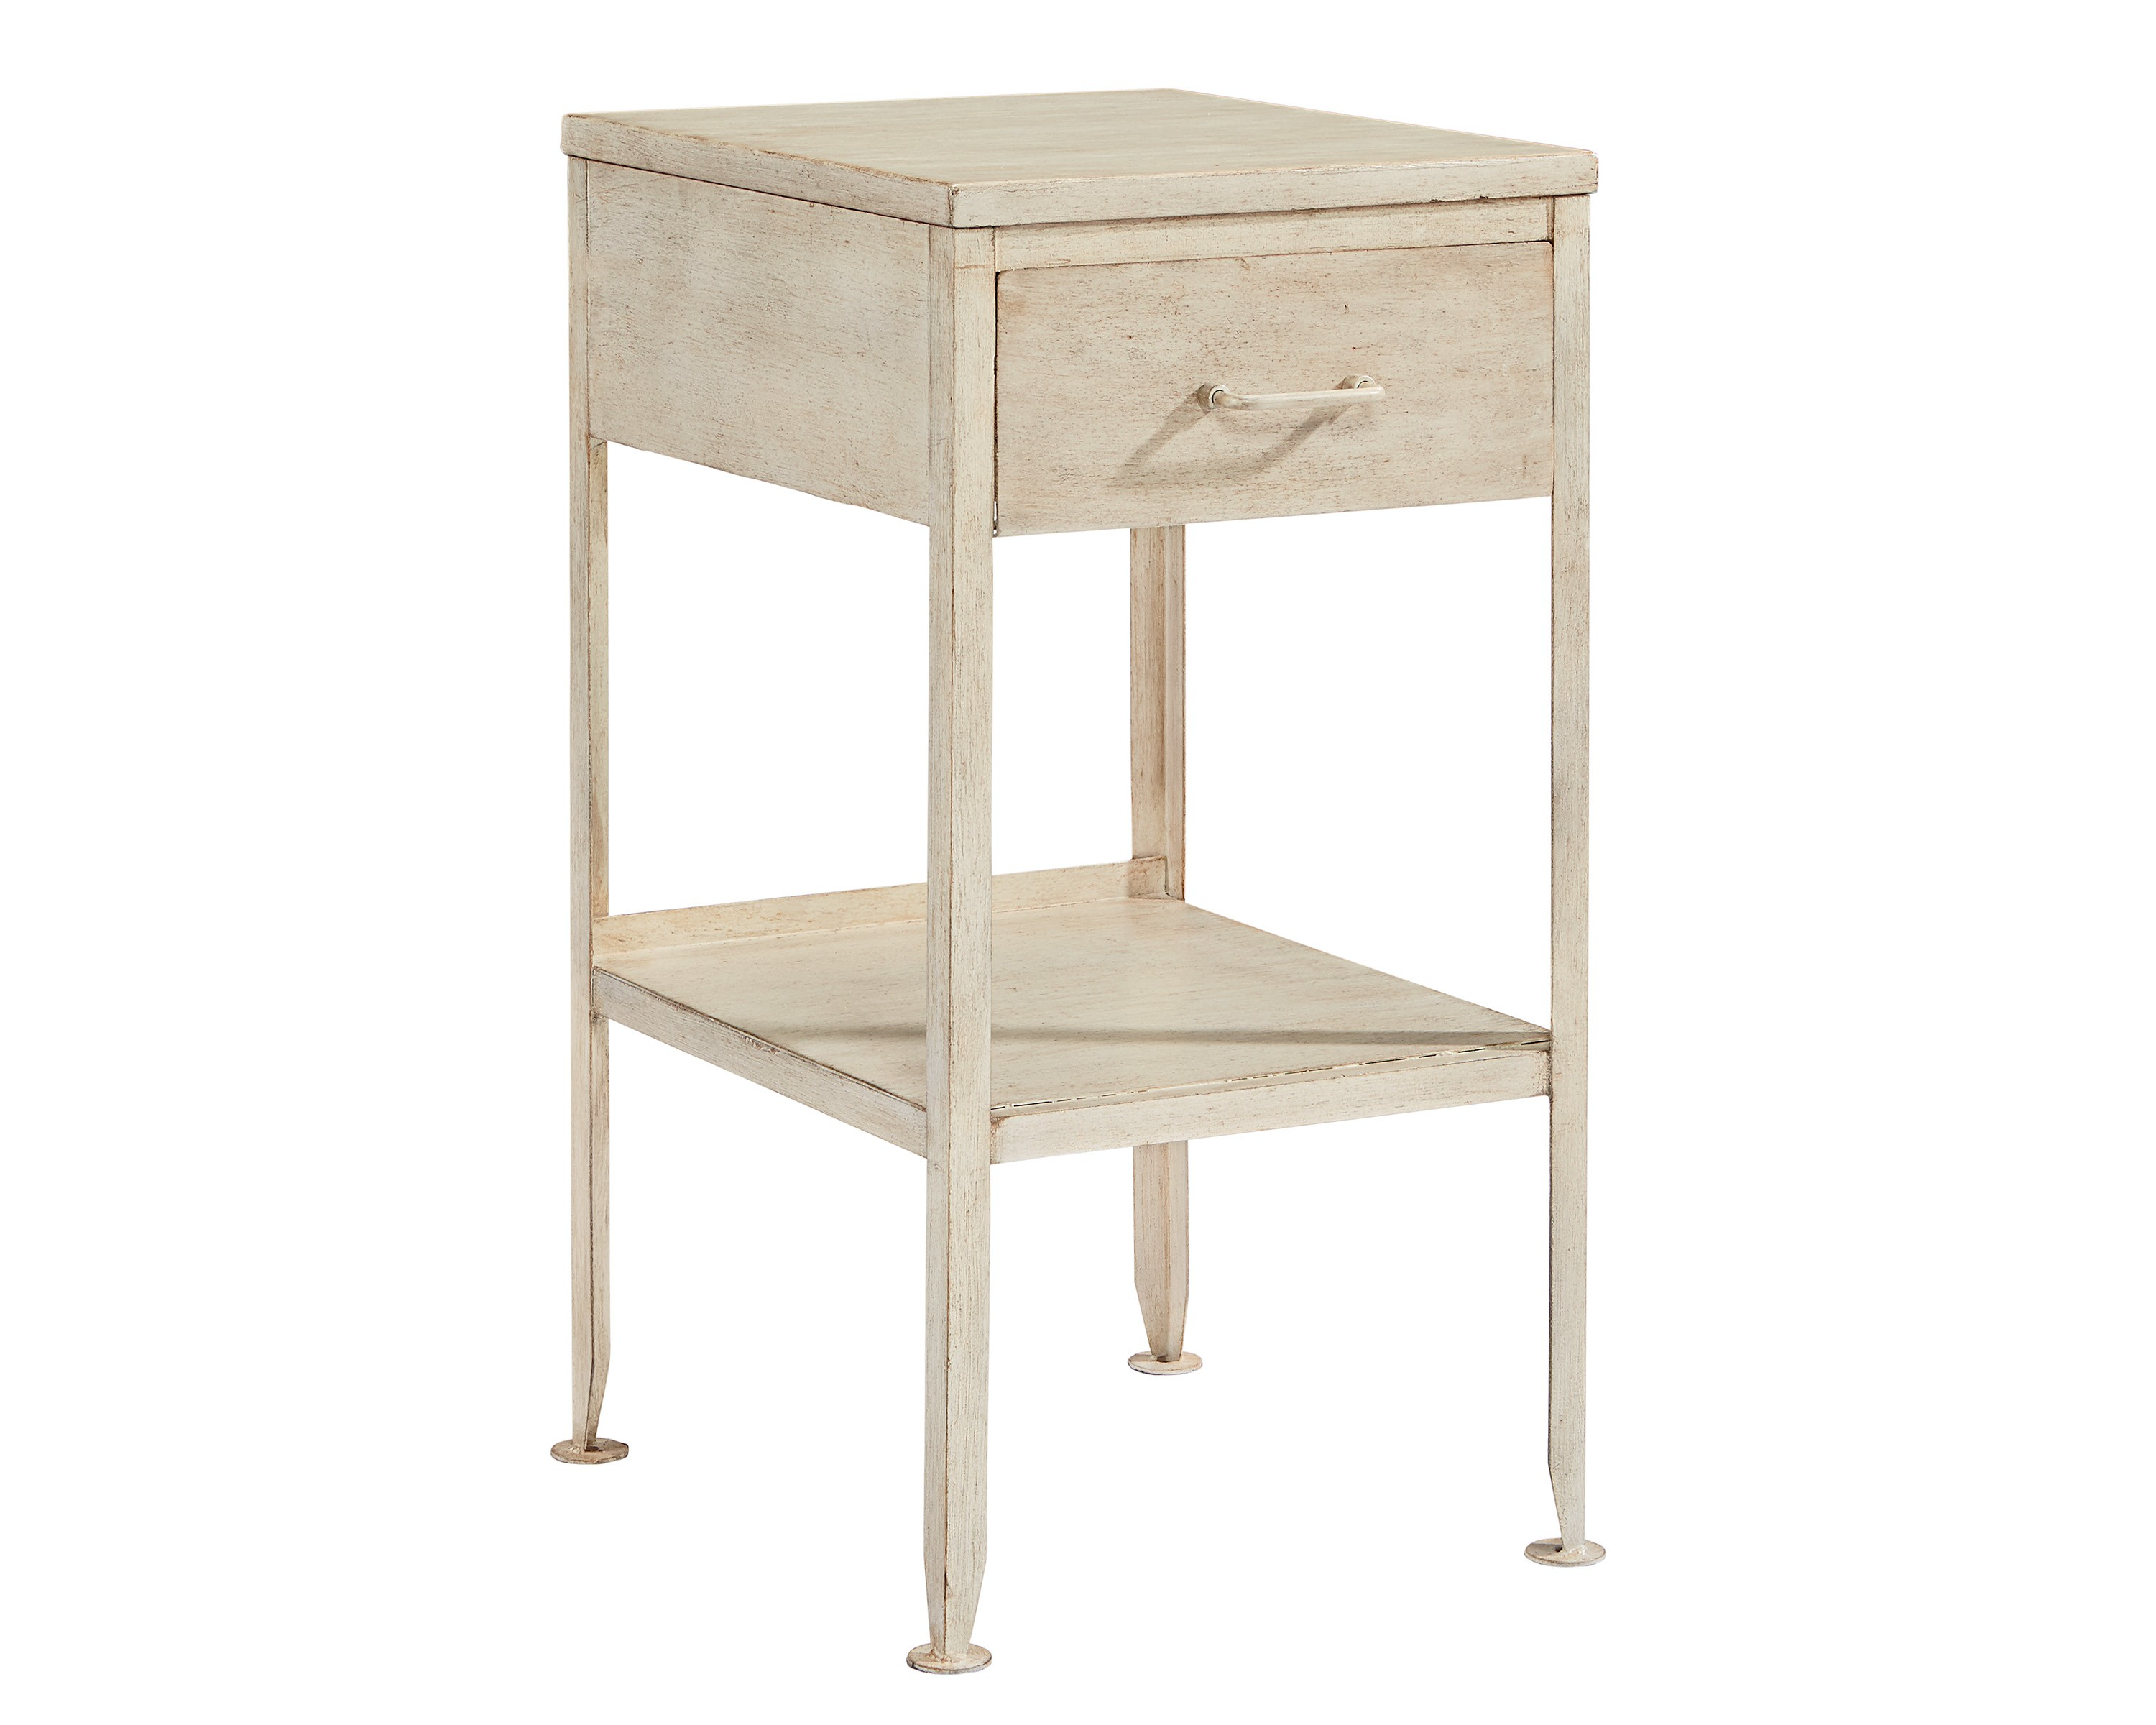 metal utility side table magnolia home silo antique white accent has lots purpose with its drawer and open cubby storage will great piece painted finish stainless steel kitchen